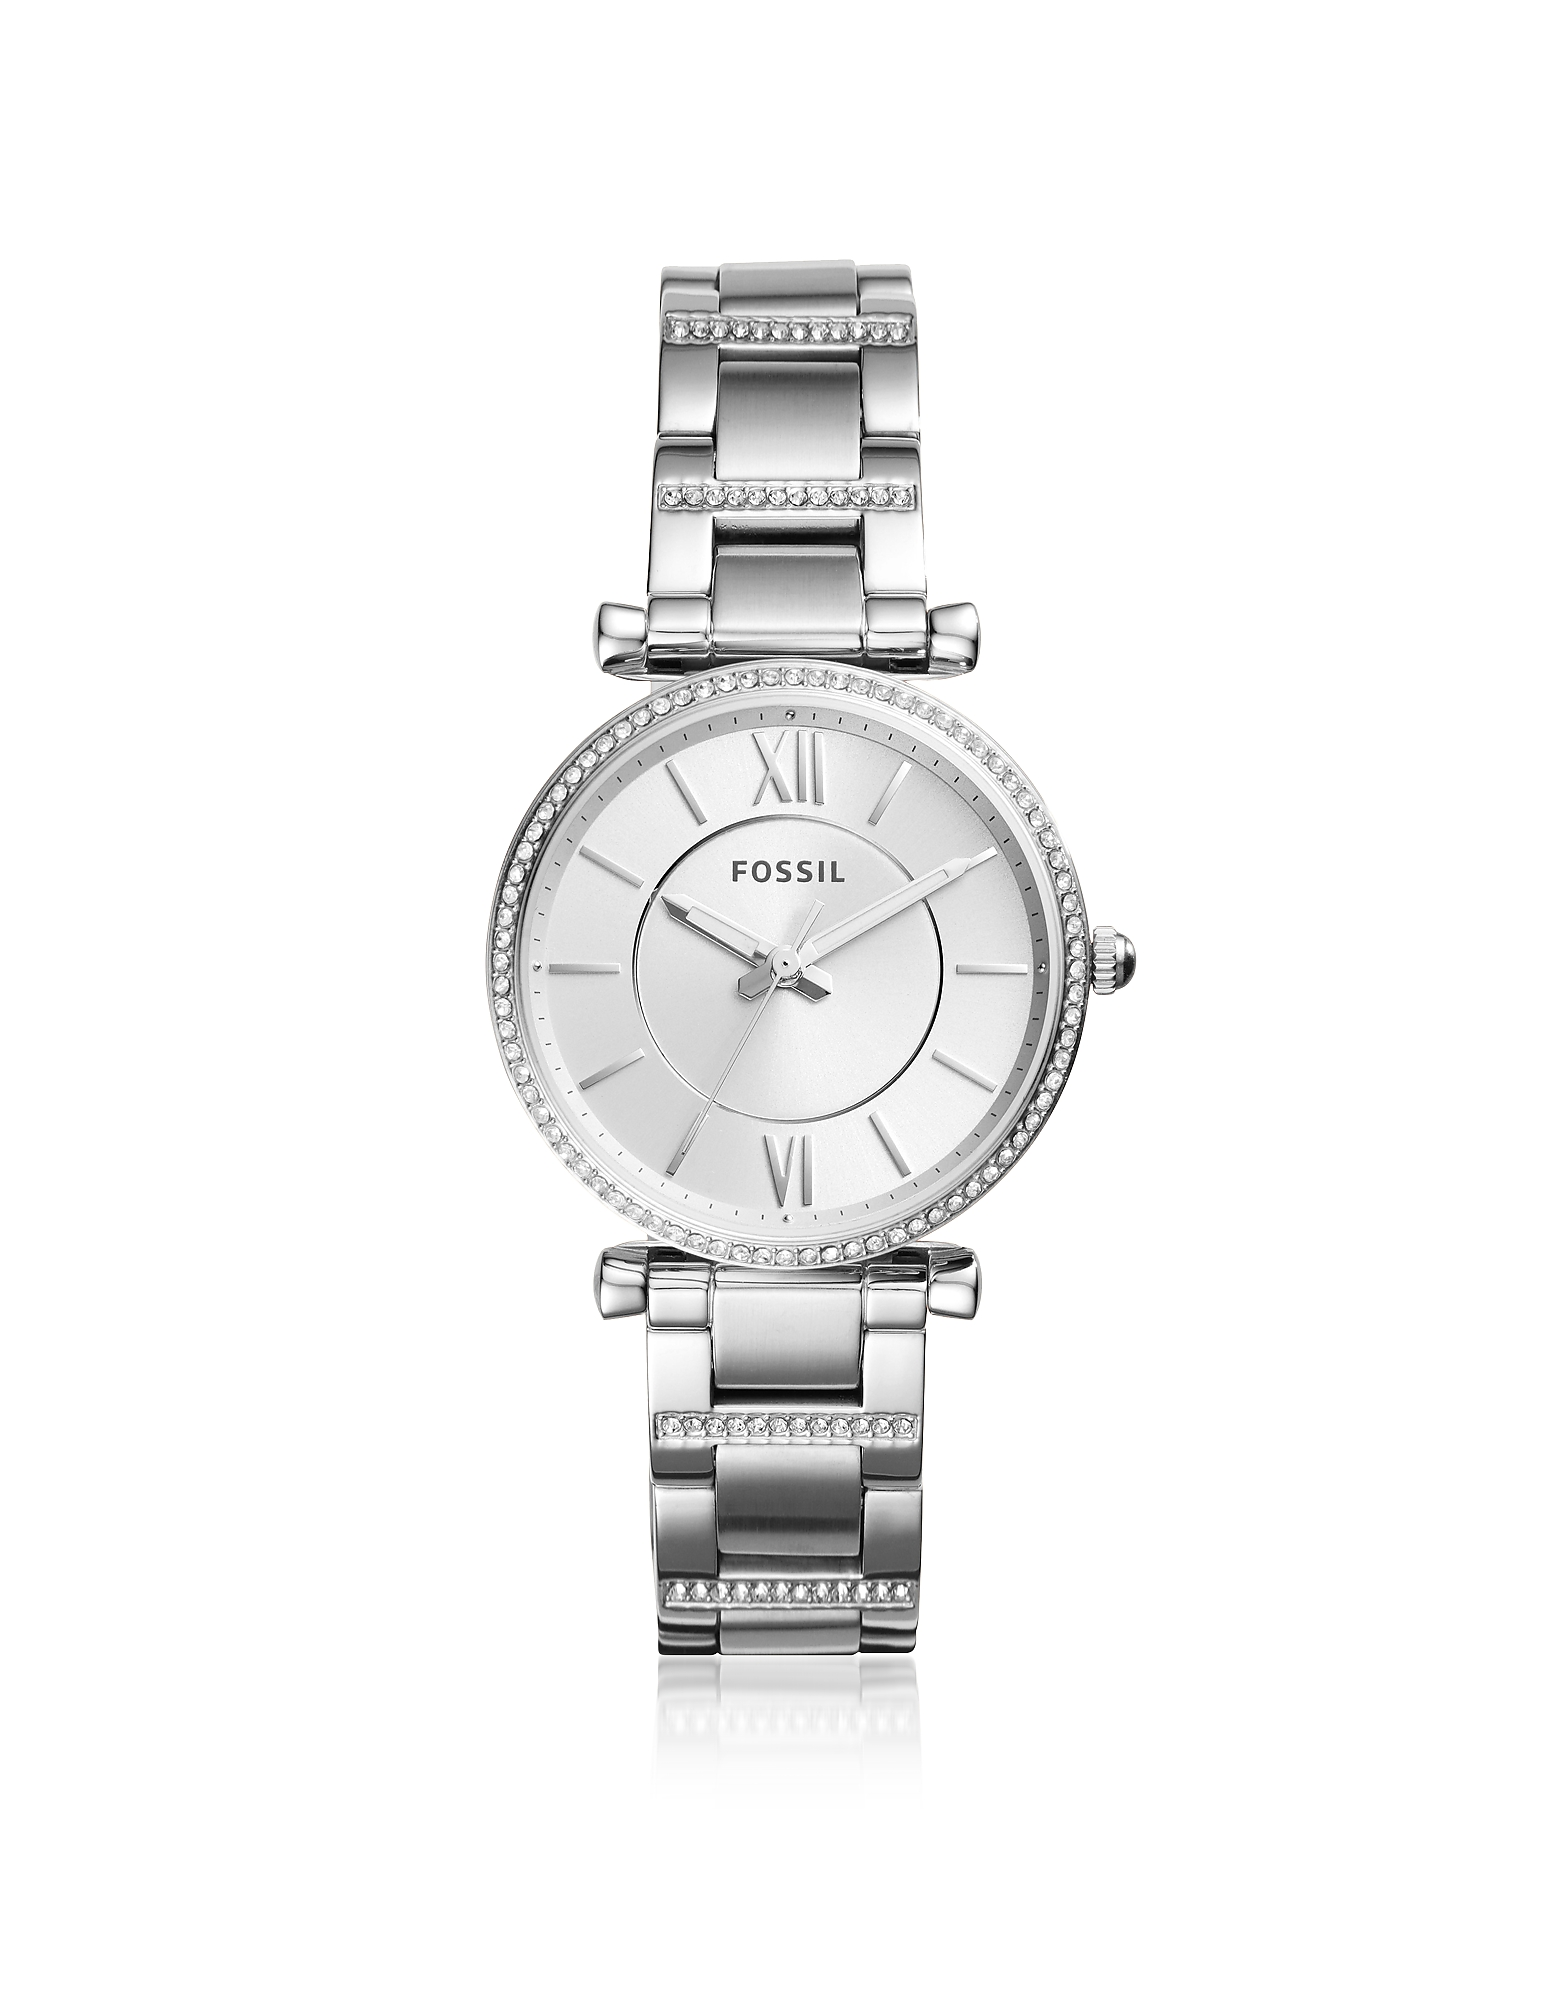 Fossil Women's Watches, Carlie Three-Hand Stainless Steel Watch